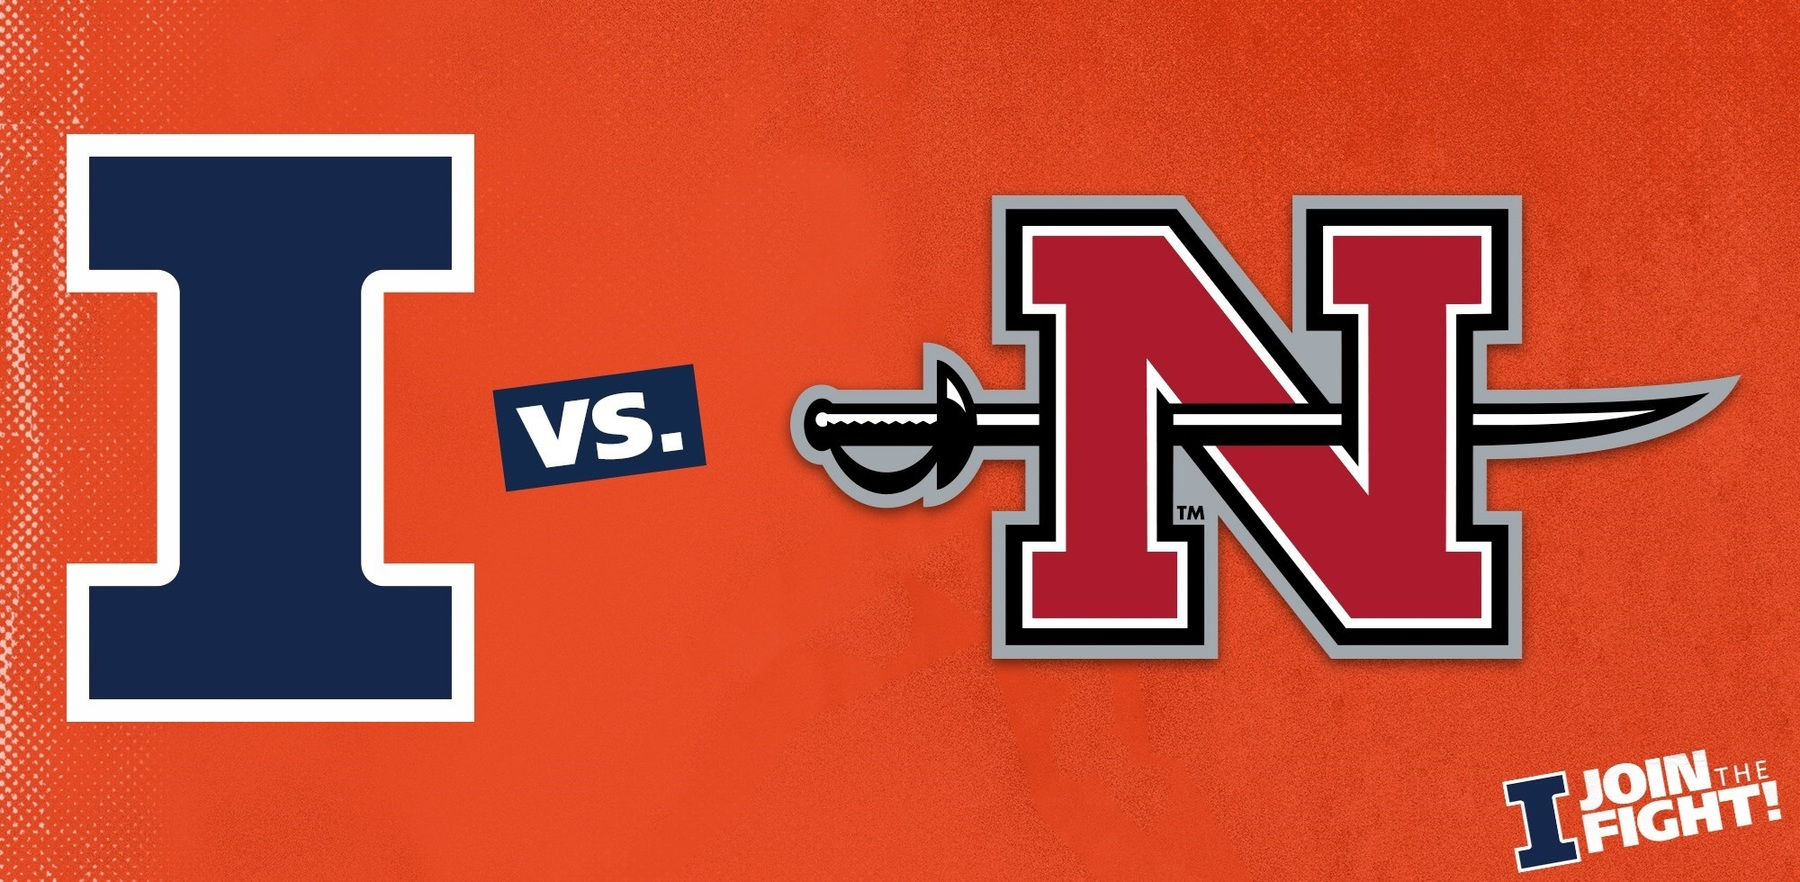 team logos for Illiinois and Nicholls State